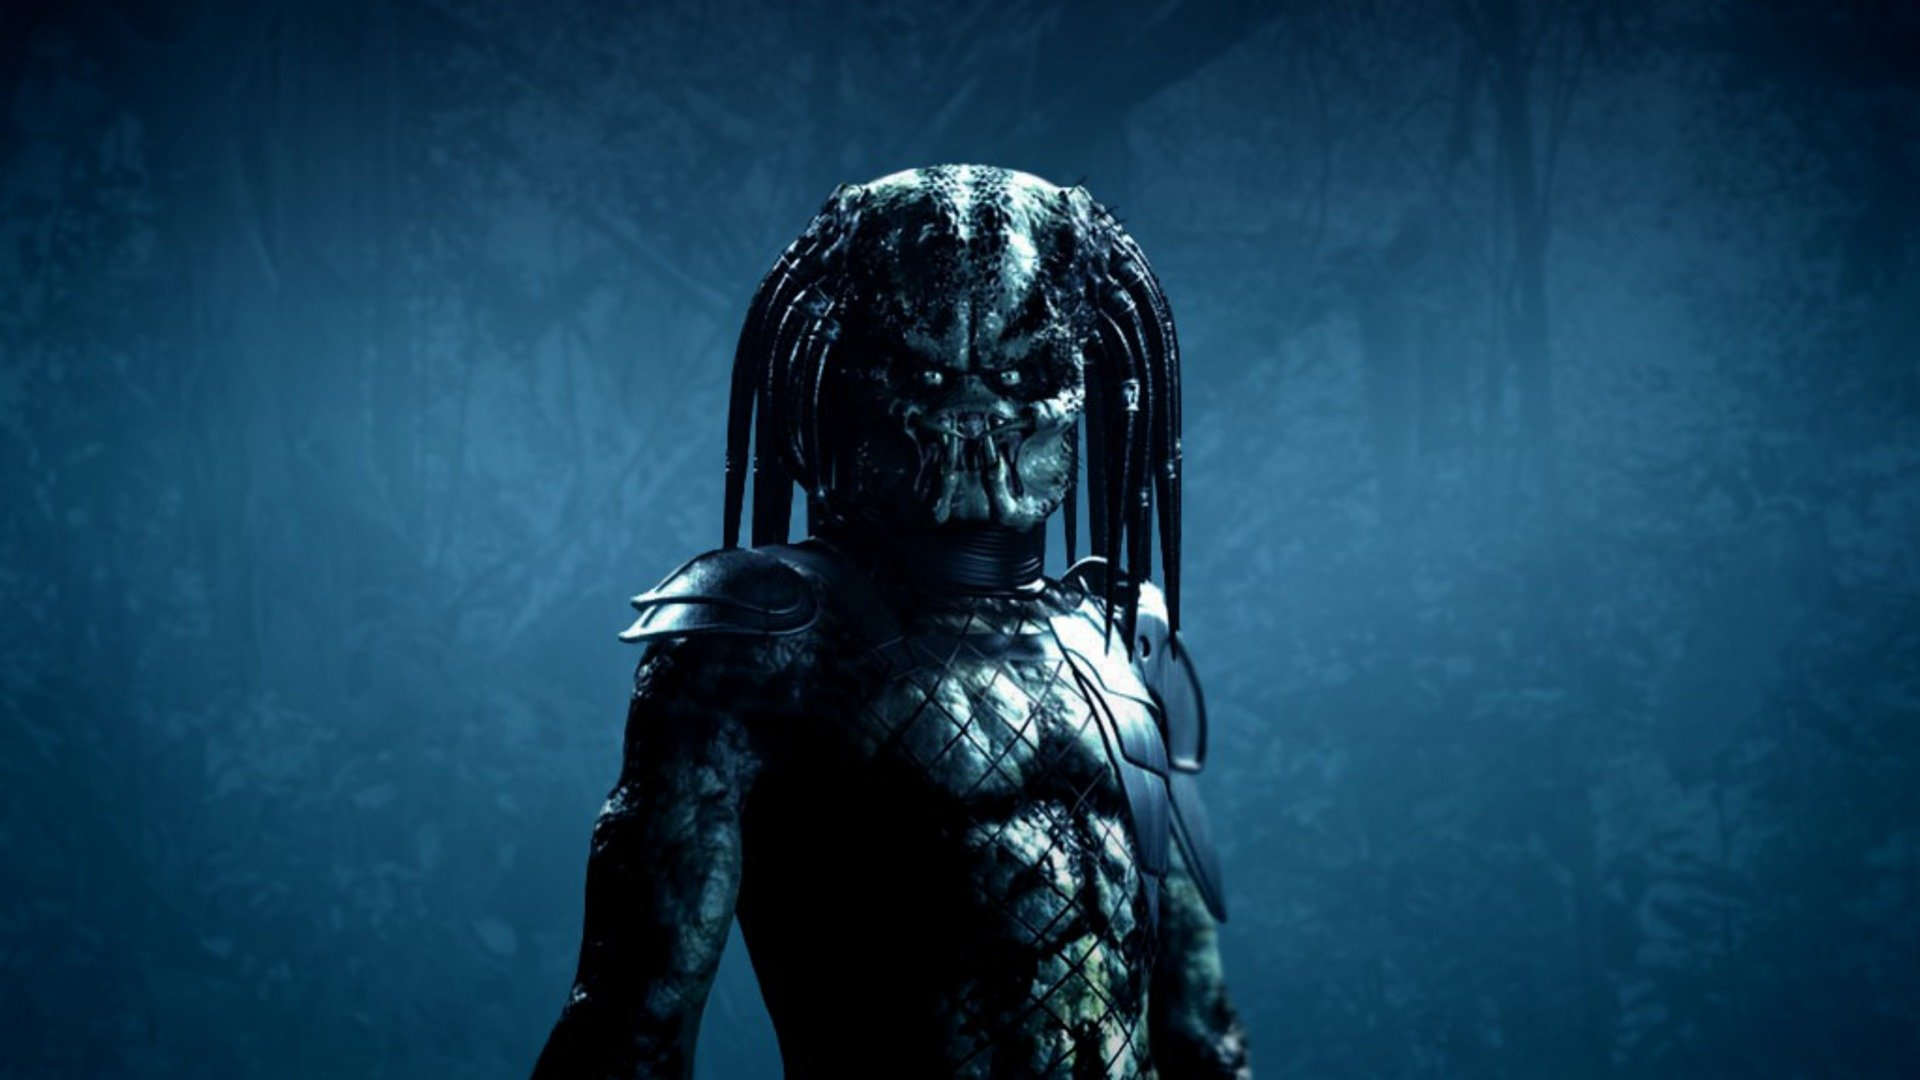 1920x1080px predator hd wallpaper - wallpapersafari